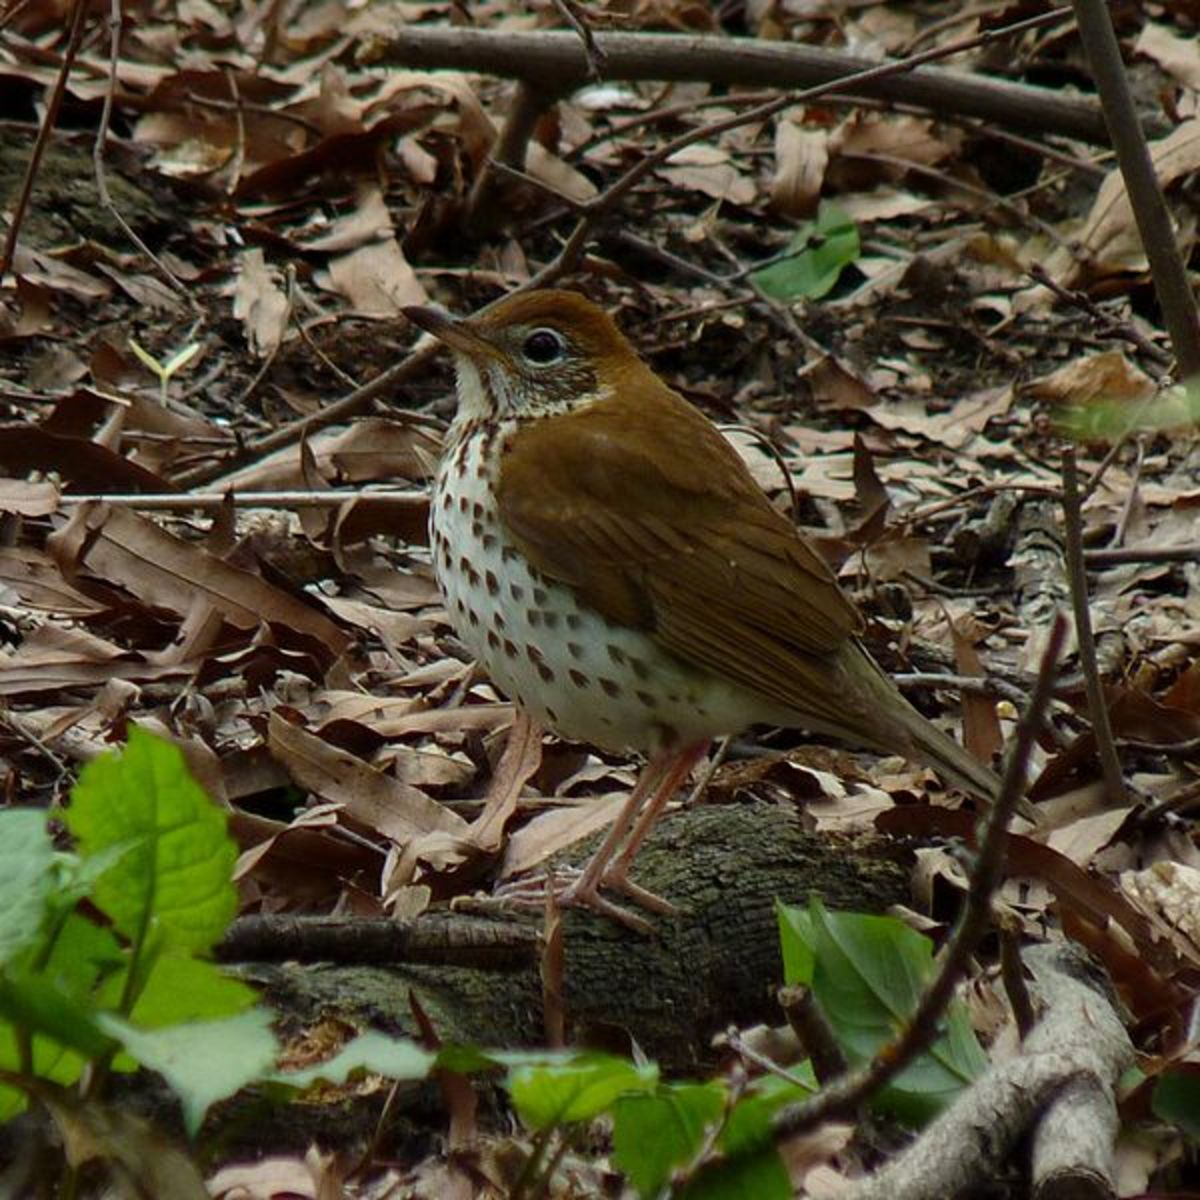 Wood Thrush can be seen hopping amongst the underbrush in NC back yards, parks and forests.